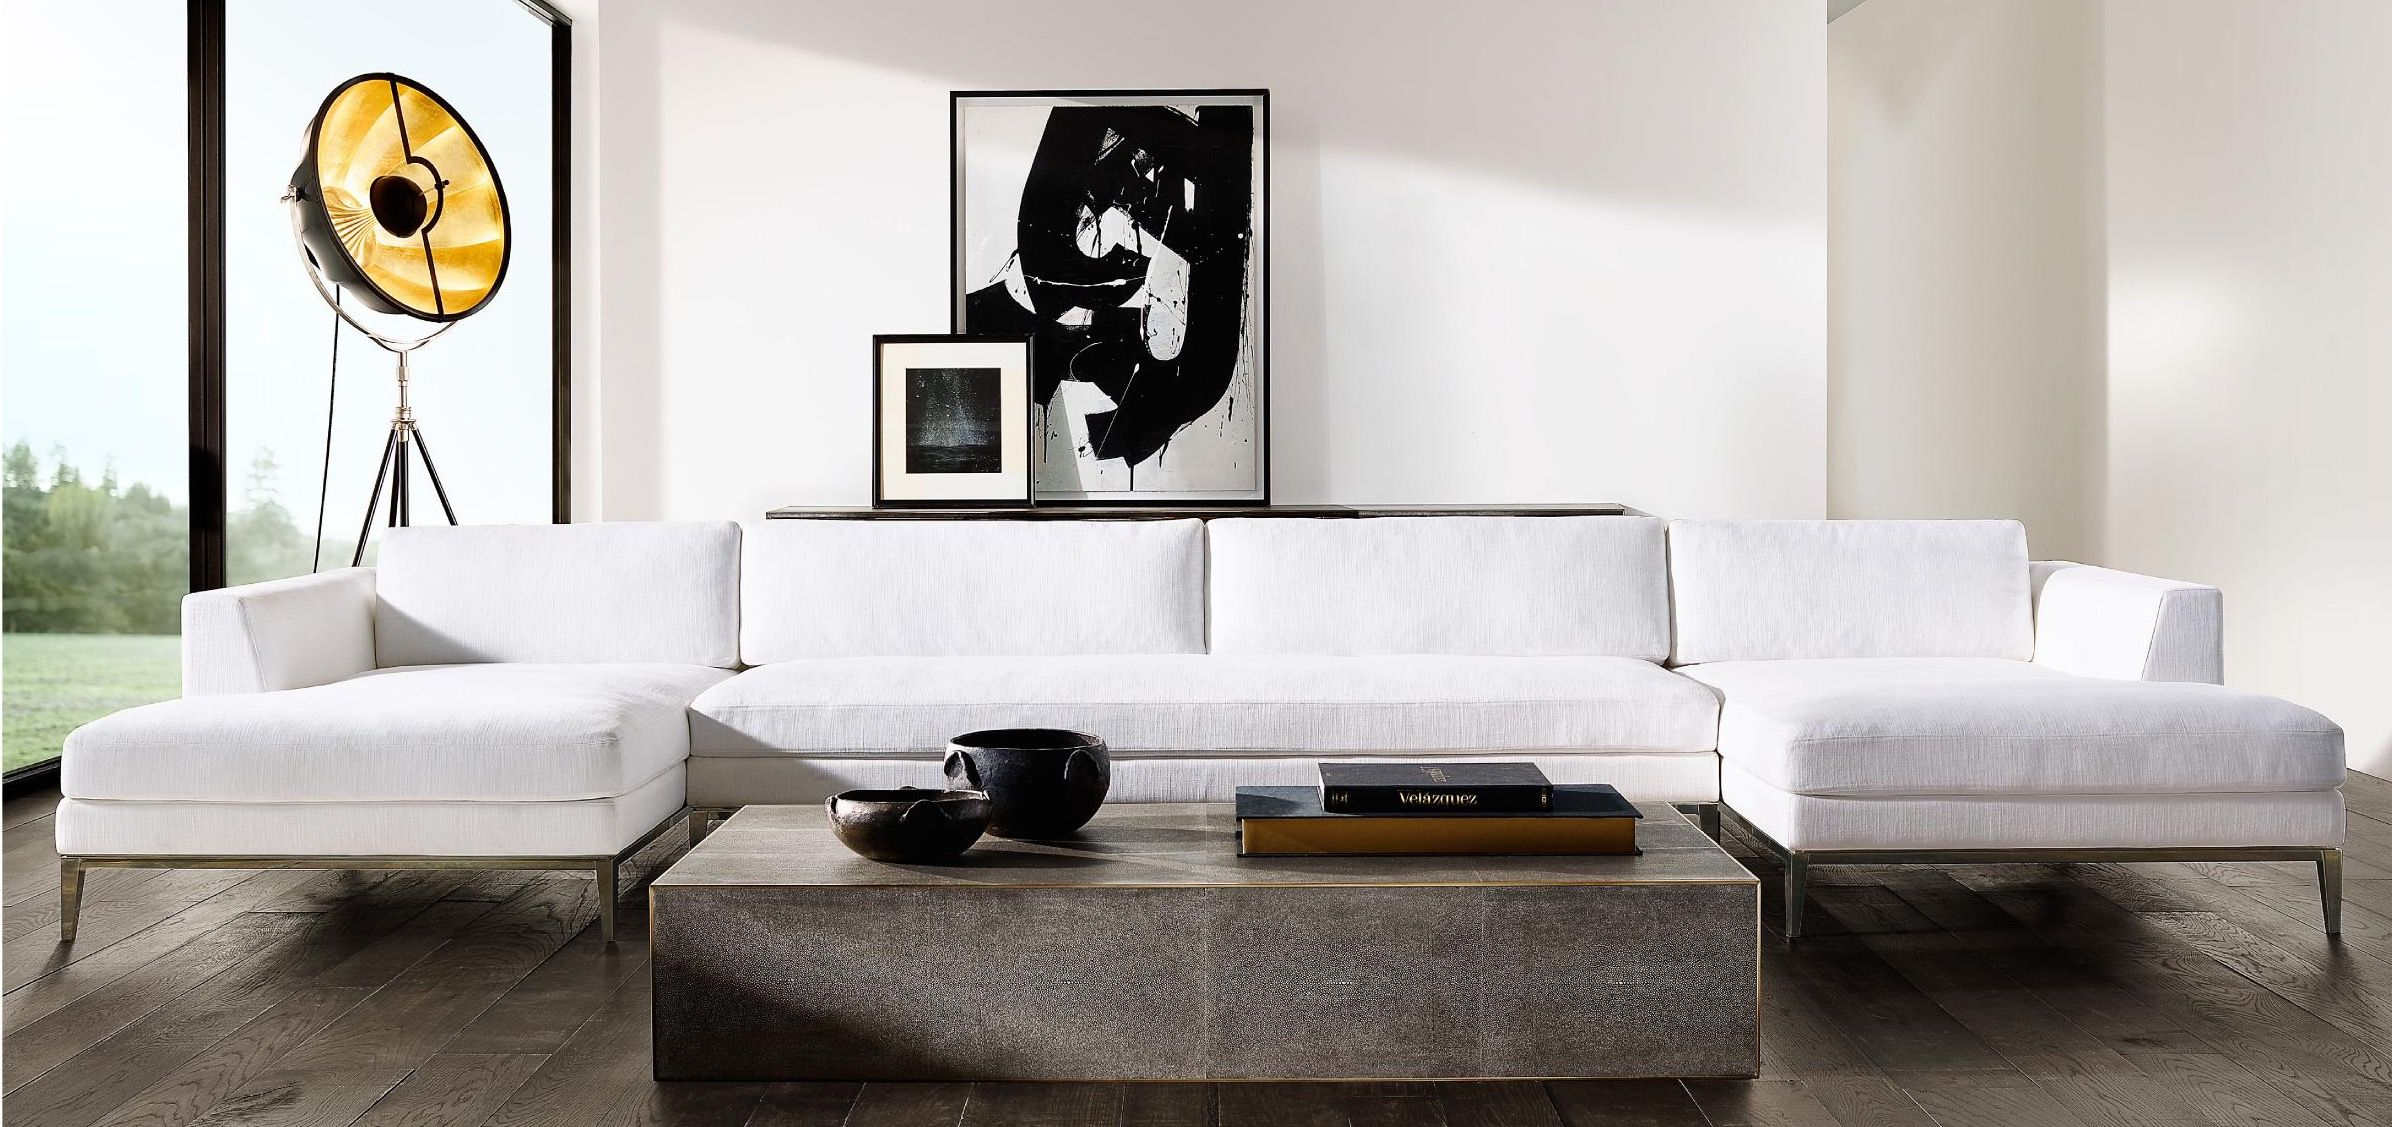 Check Out This Image Restoration Hardware Rh Modern Modern Room [ 1127 x 2392 Pixel ]